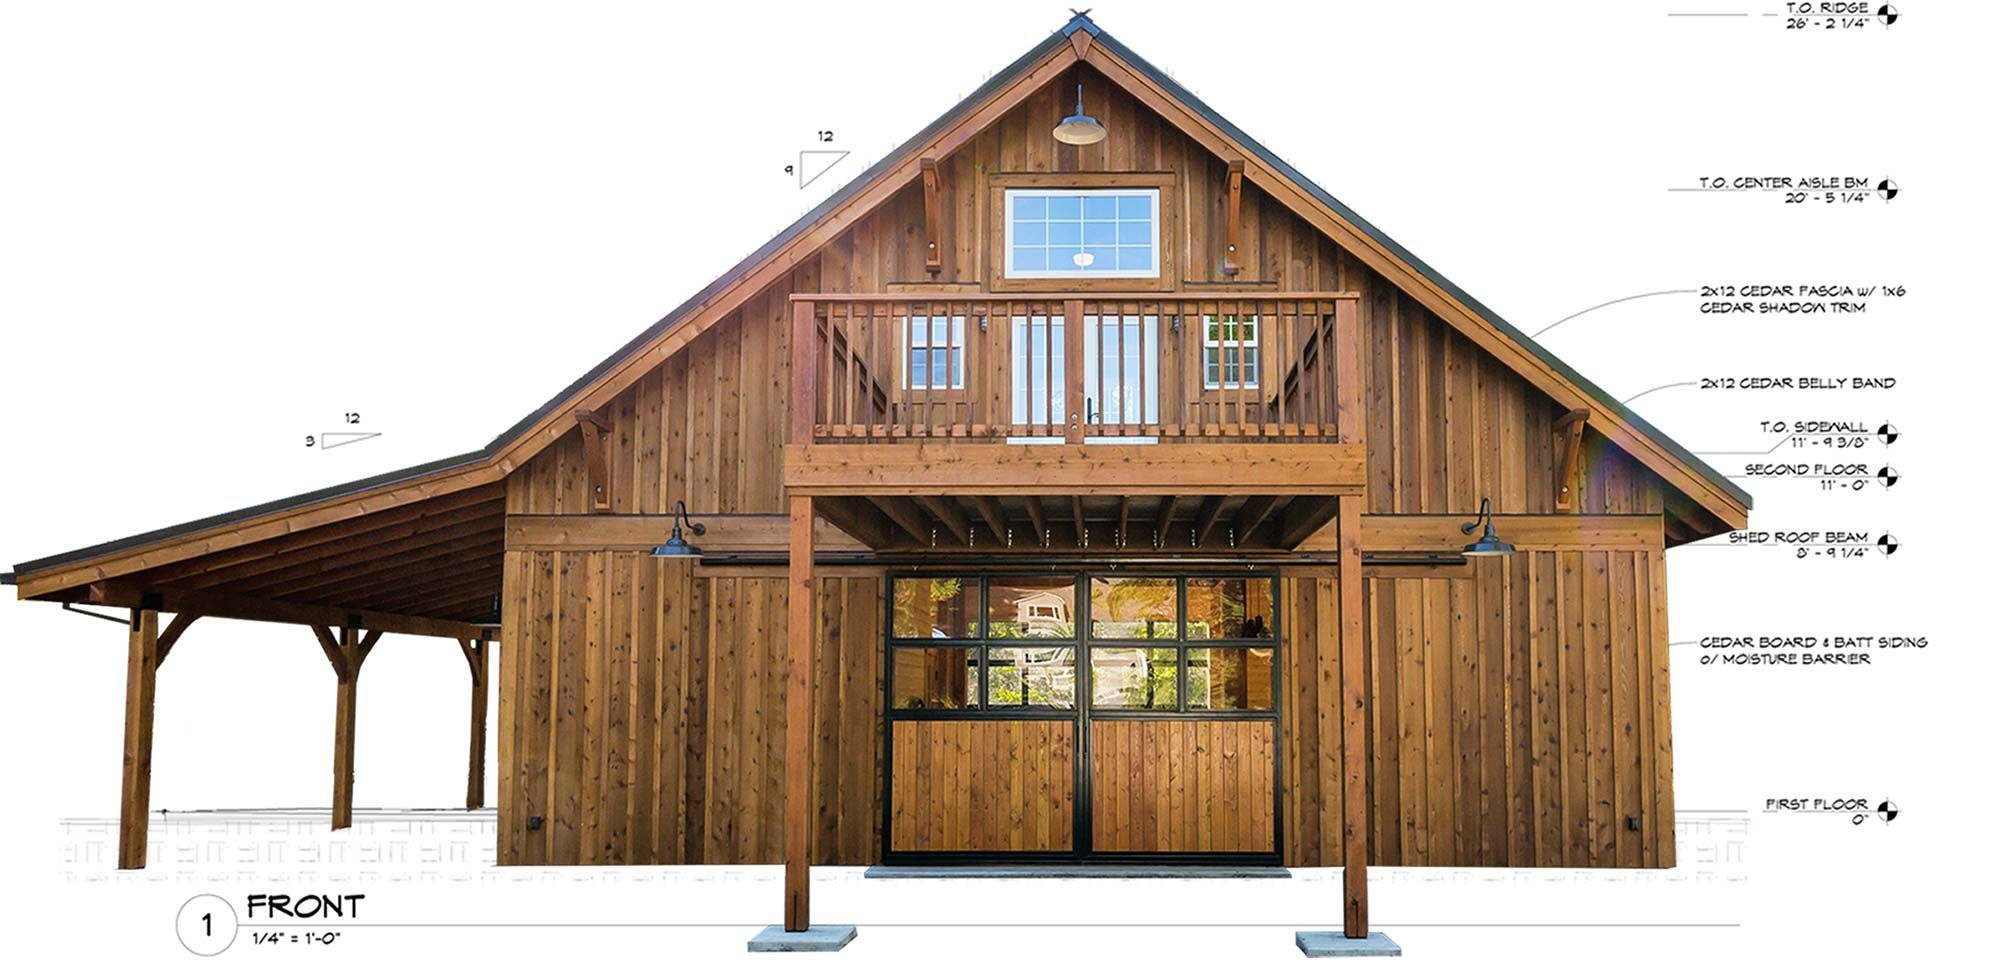 Dc structures is home to america 39 s most complete barn kits for Barn house plans kits